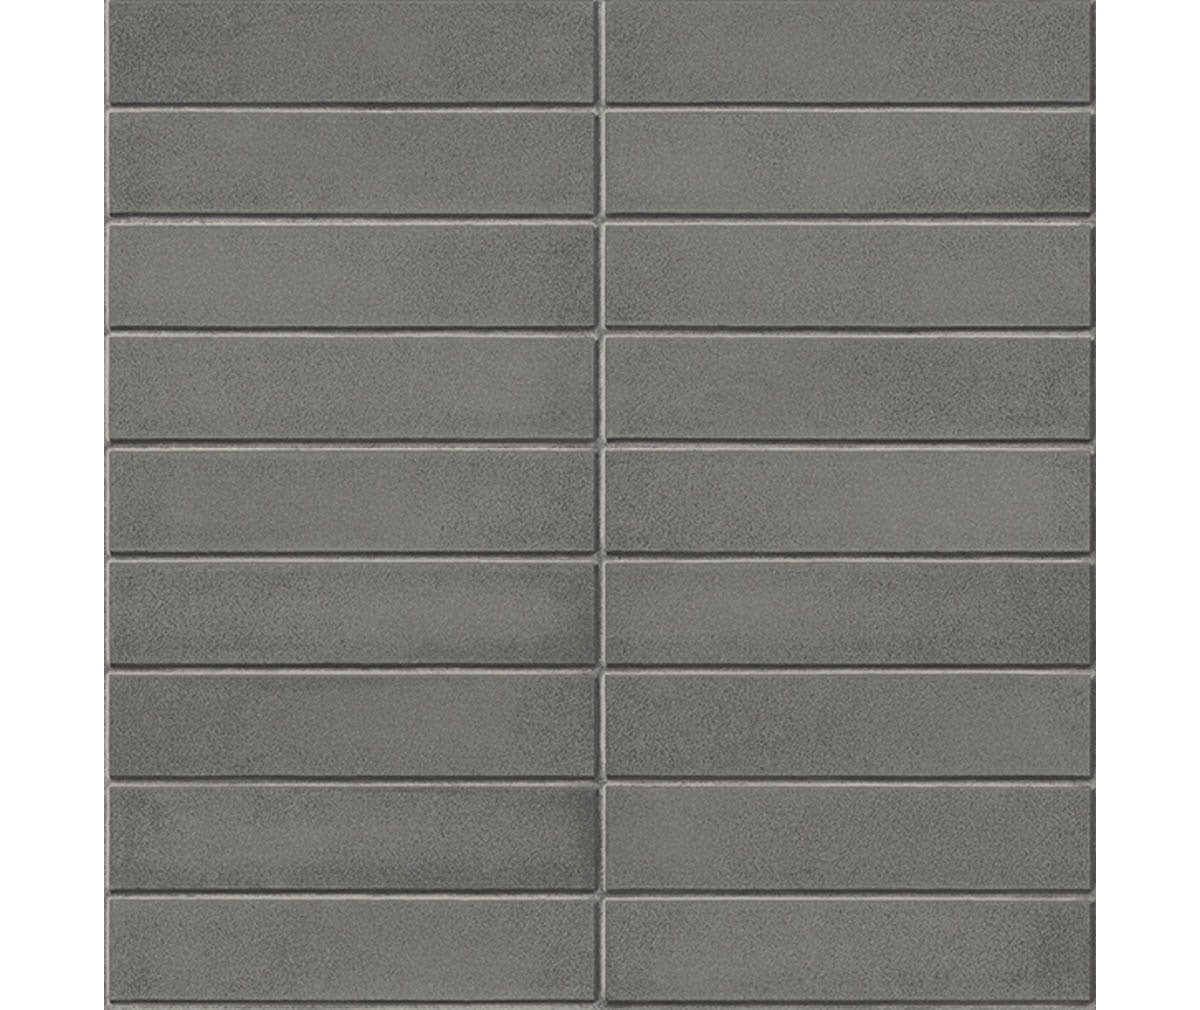 Midcentury Modern Dark Grey Brick Wallpaper available at Barrydowne Paint